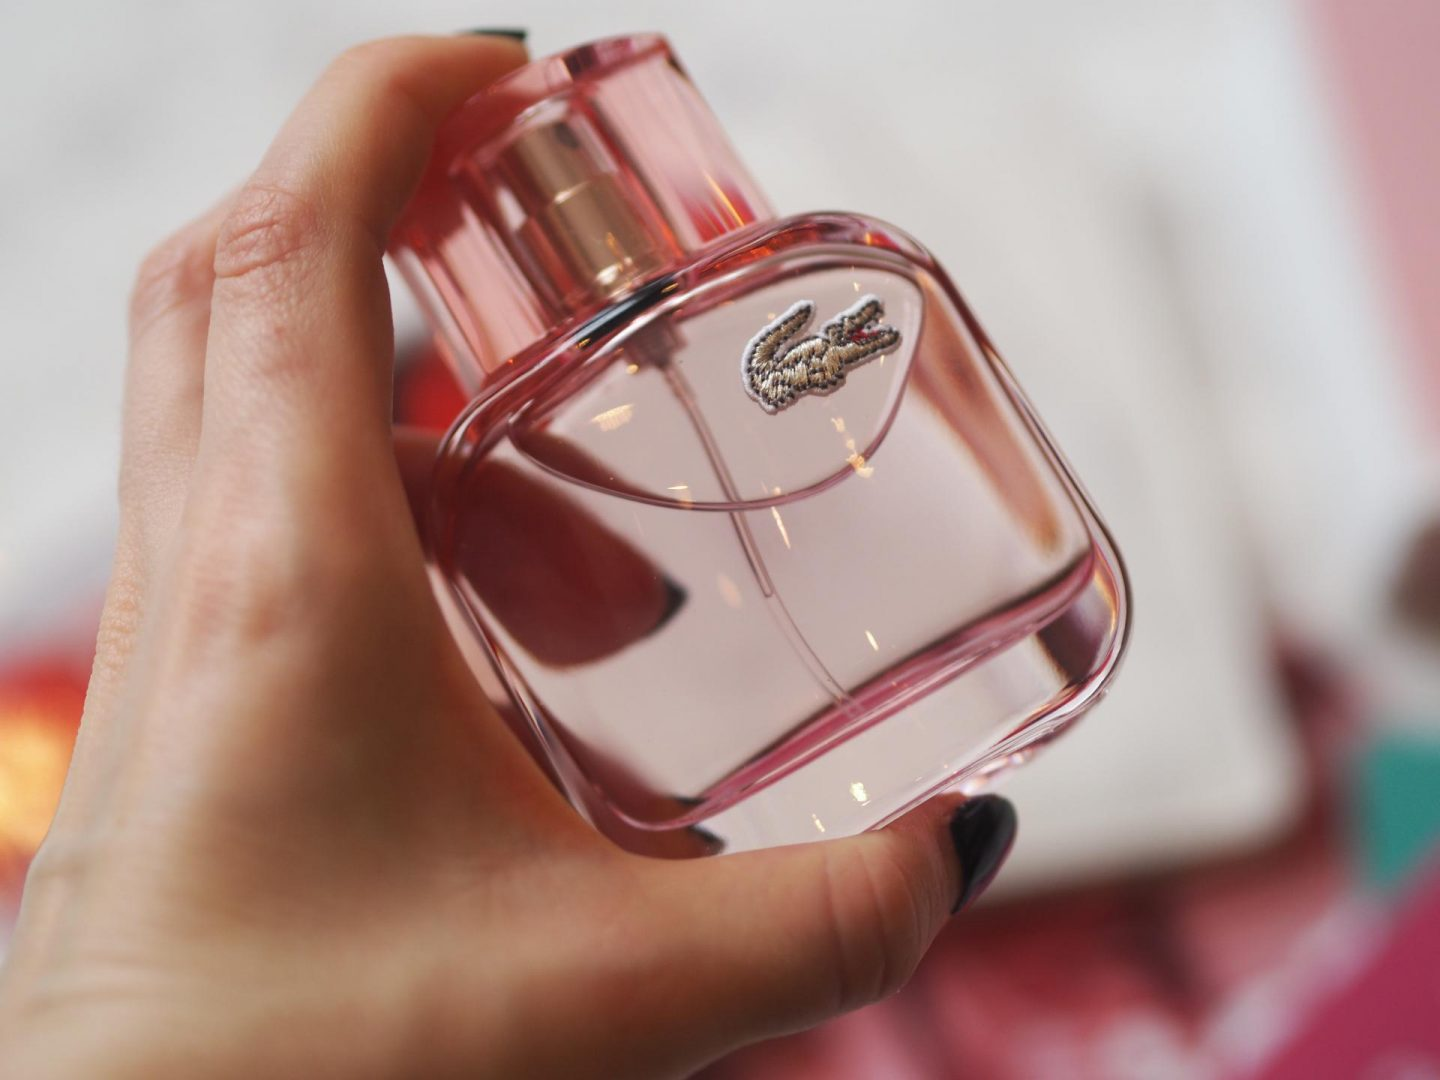 Lacoste - the spring fragrance edit